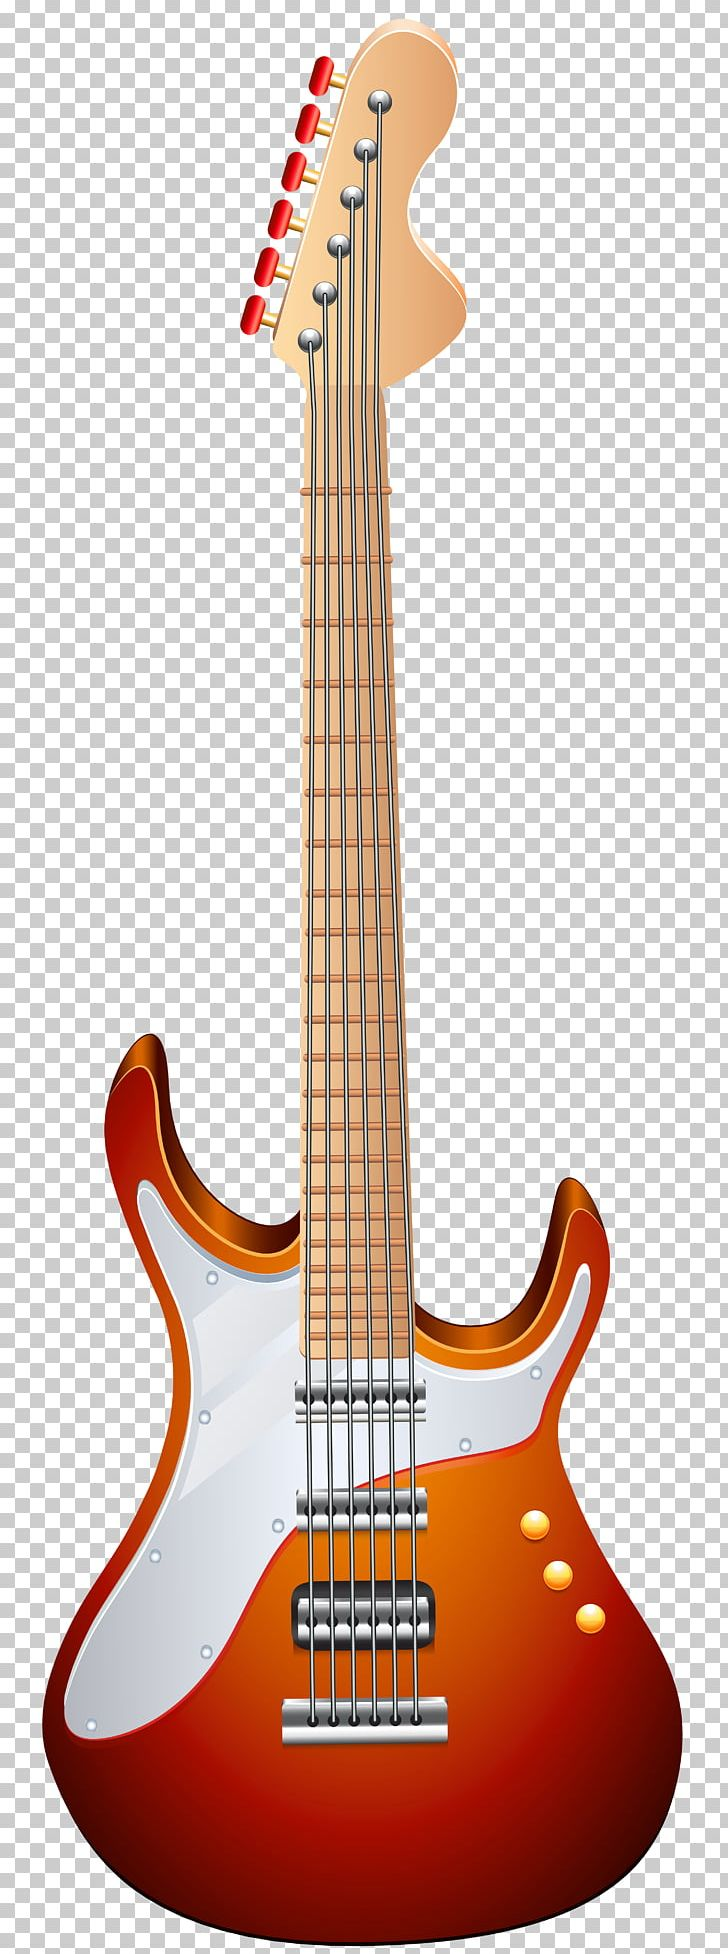 Electric Guitar Musical Instruments Acoustic Guitar String Instruments PNG, Clipart, Acoustic Electric Guitar, Guitar, Musical Instrument, Musical Instruments, Objects Free PNG Download